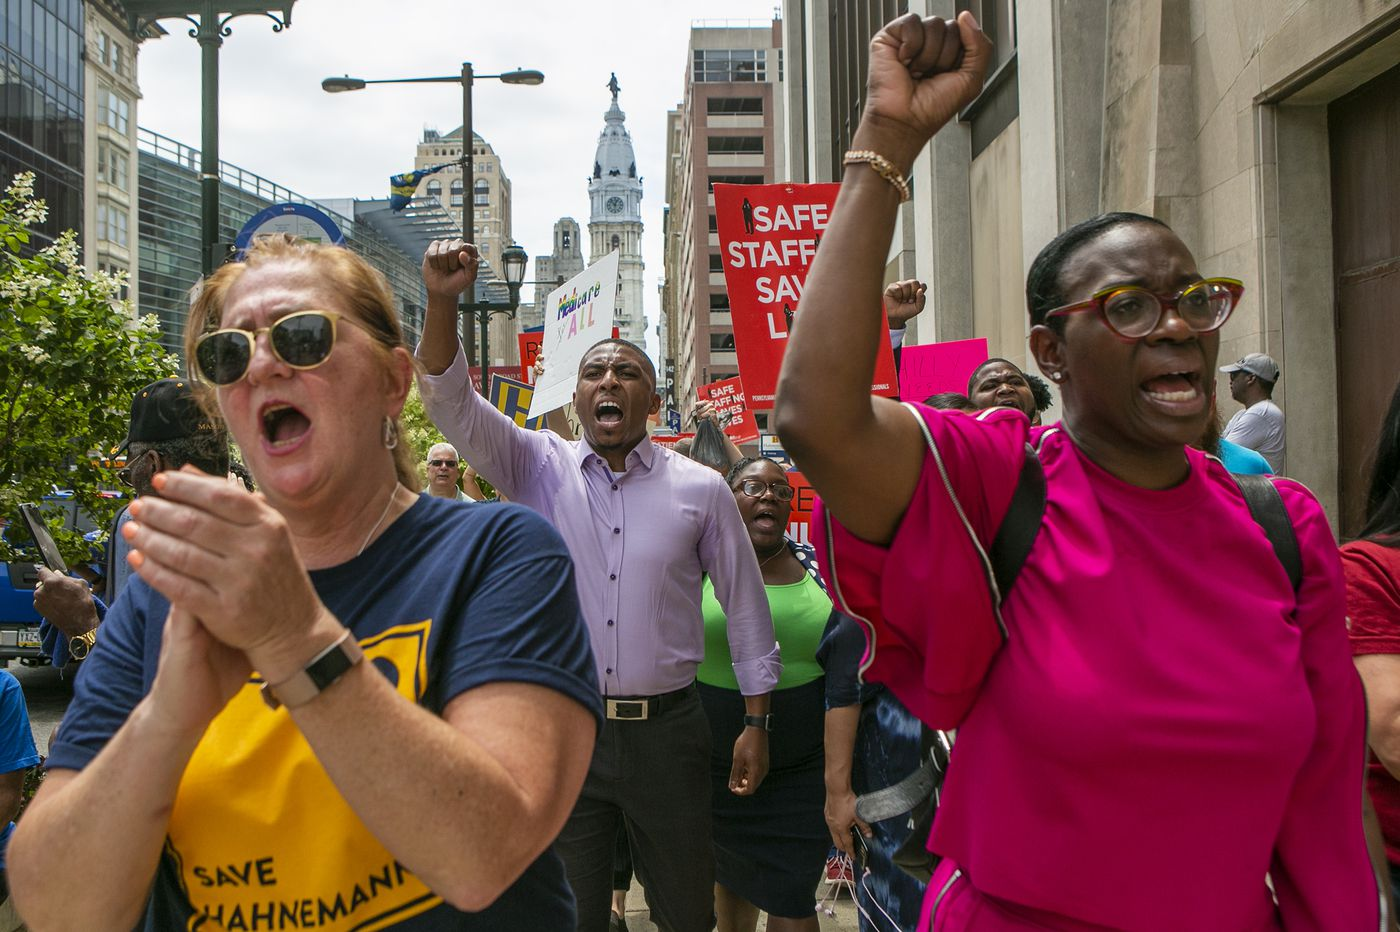 Low-wage worker unions are trying to flex their muscle in Philly's City Council race